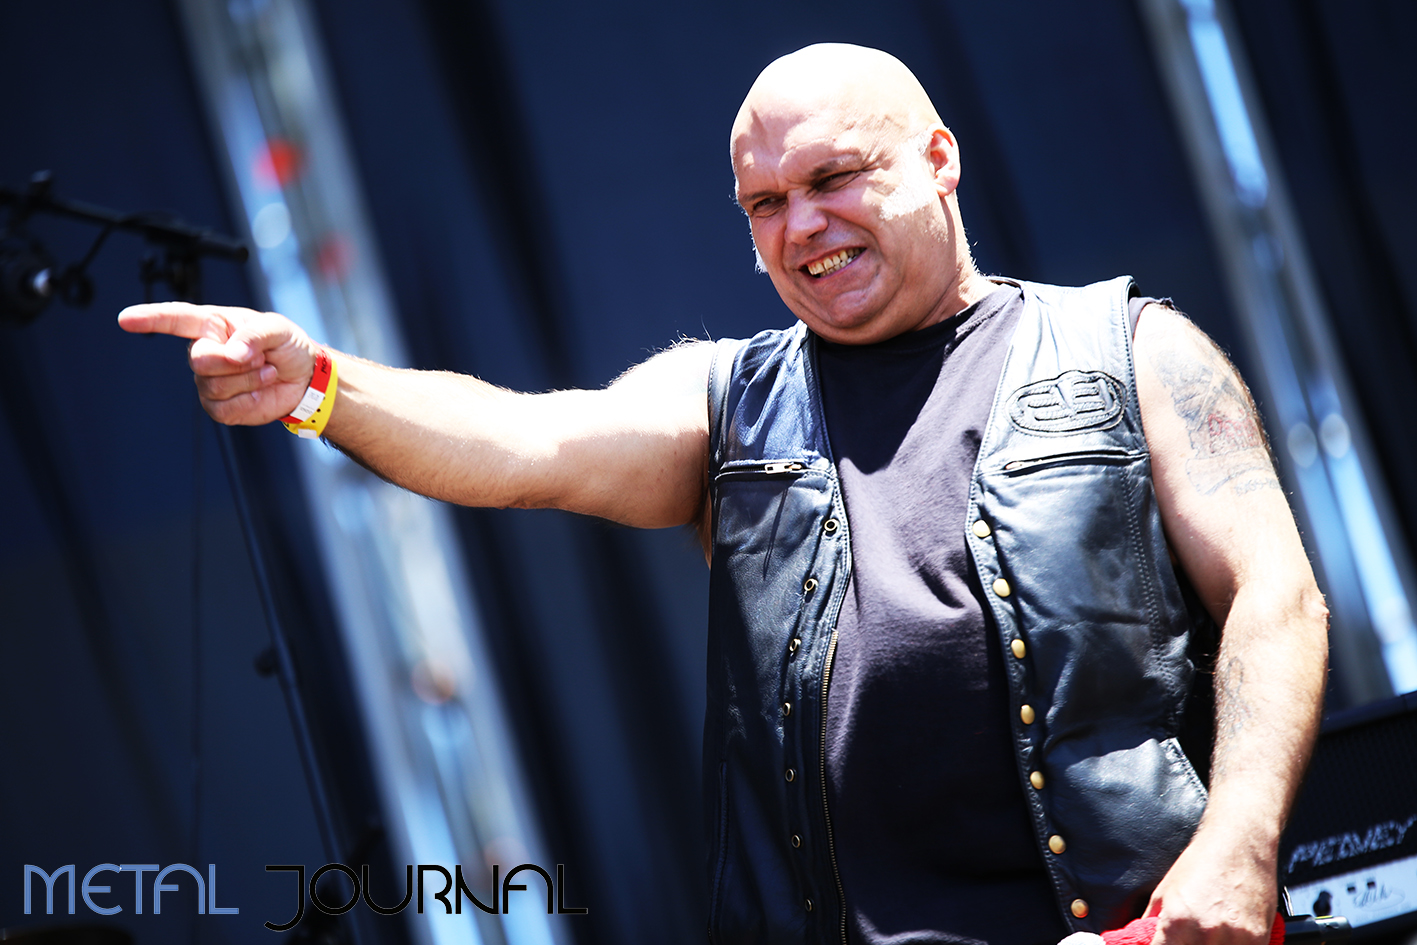 blaze bayley metal journal rock the coast 2019 pic 6